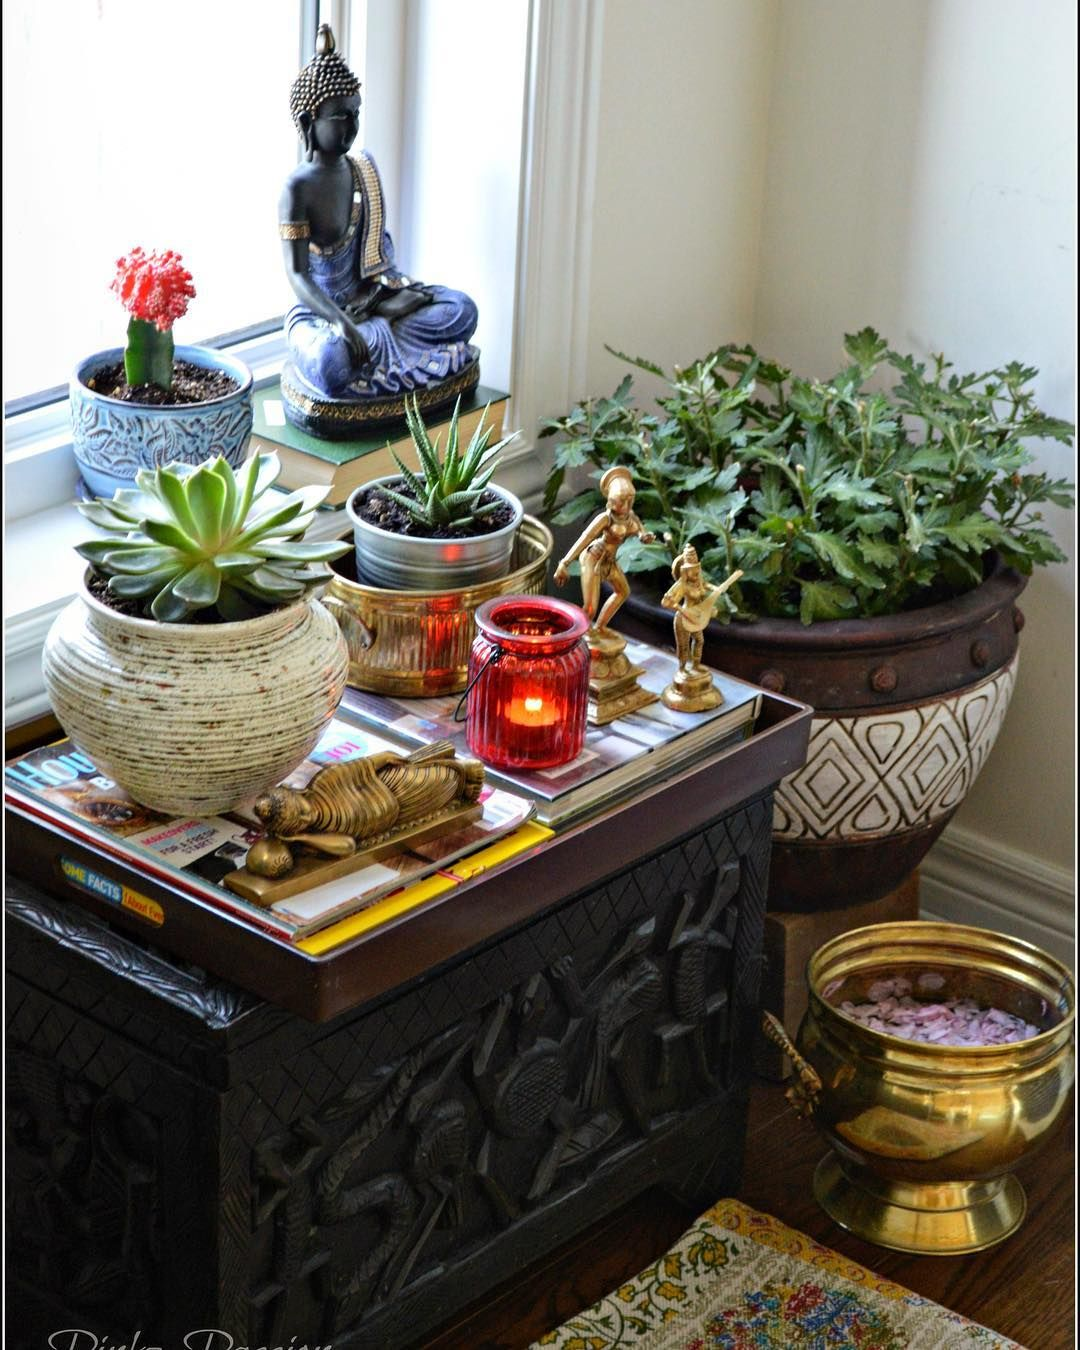 Indoor Garden Zen Place Buddha Corner Indoor Plants Styling Interiors With Plants Zen Corner Peaceful Co Living Room Decor On A Budget Buddha Decor Decor #plants #feng #shui #living #room